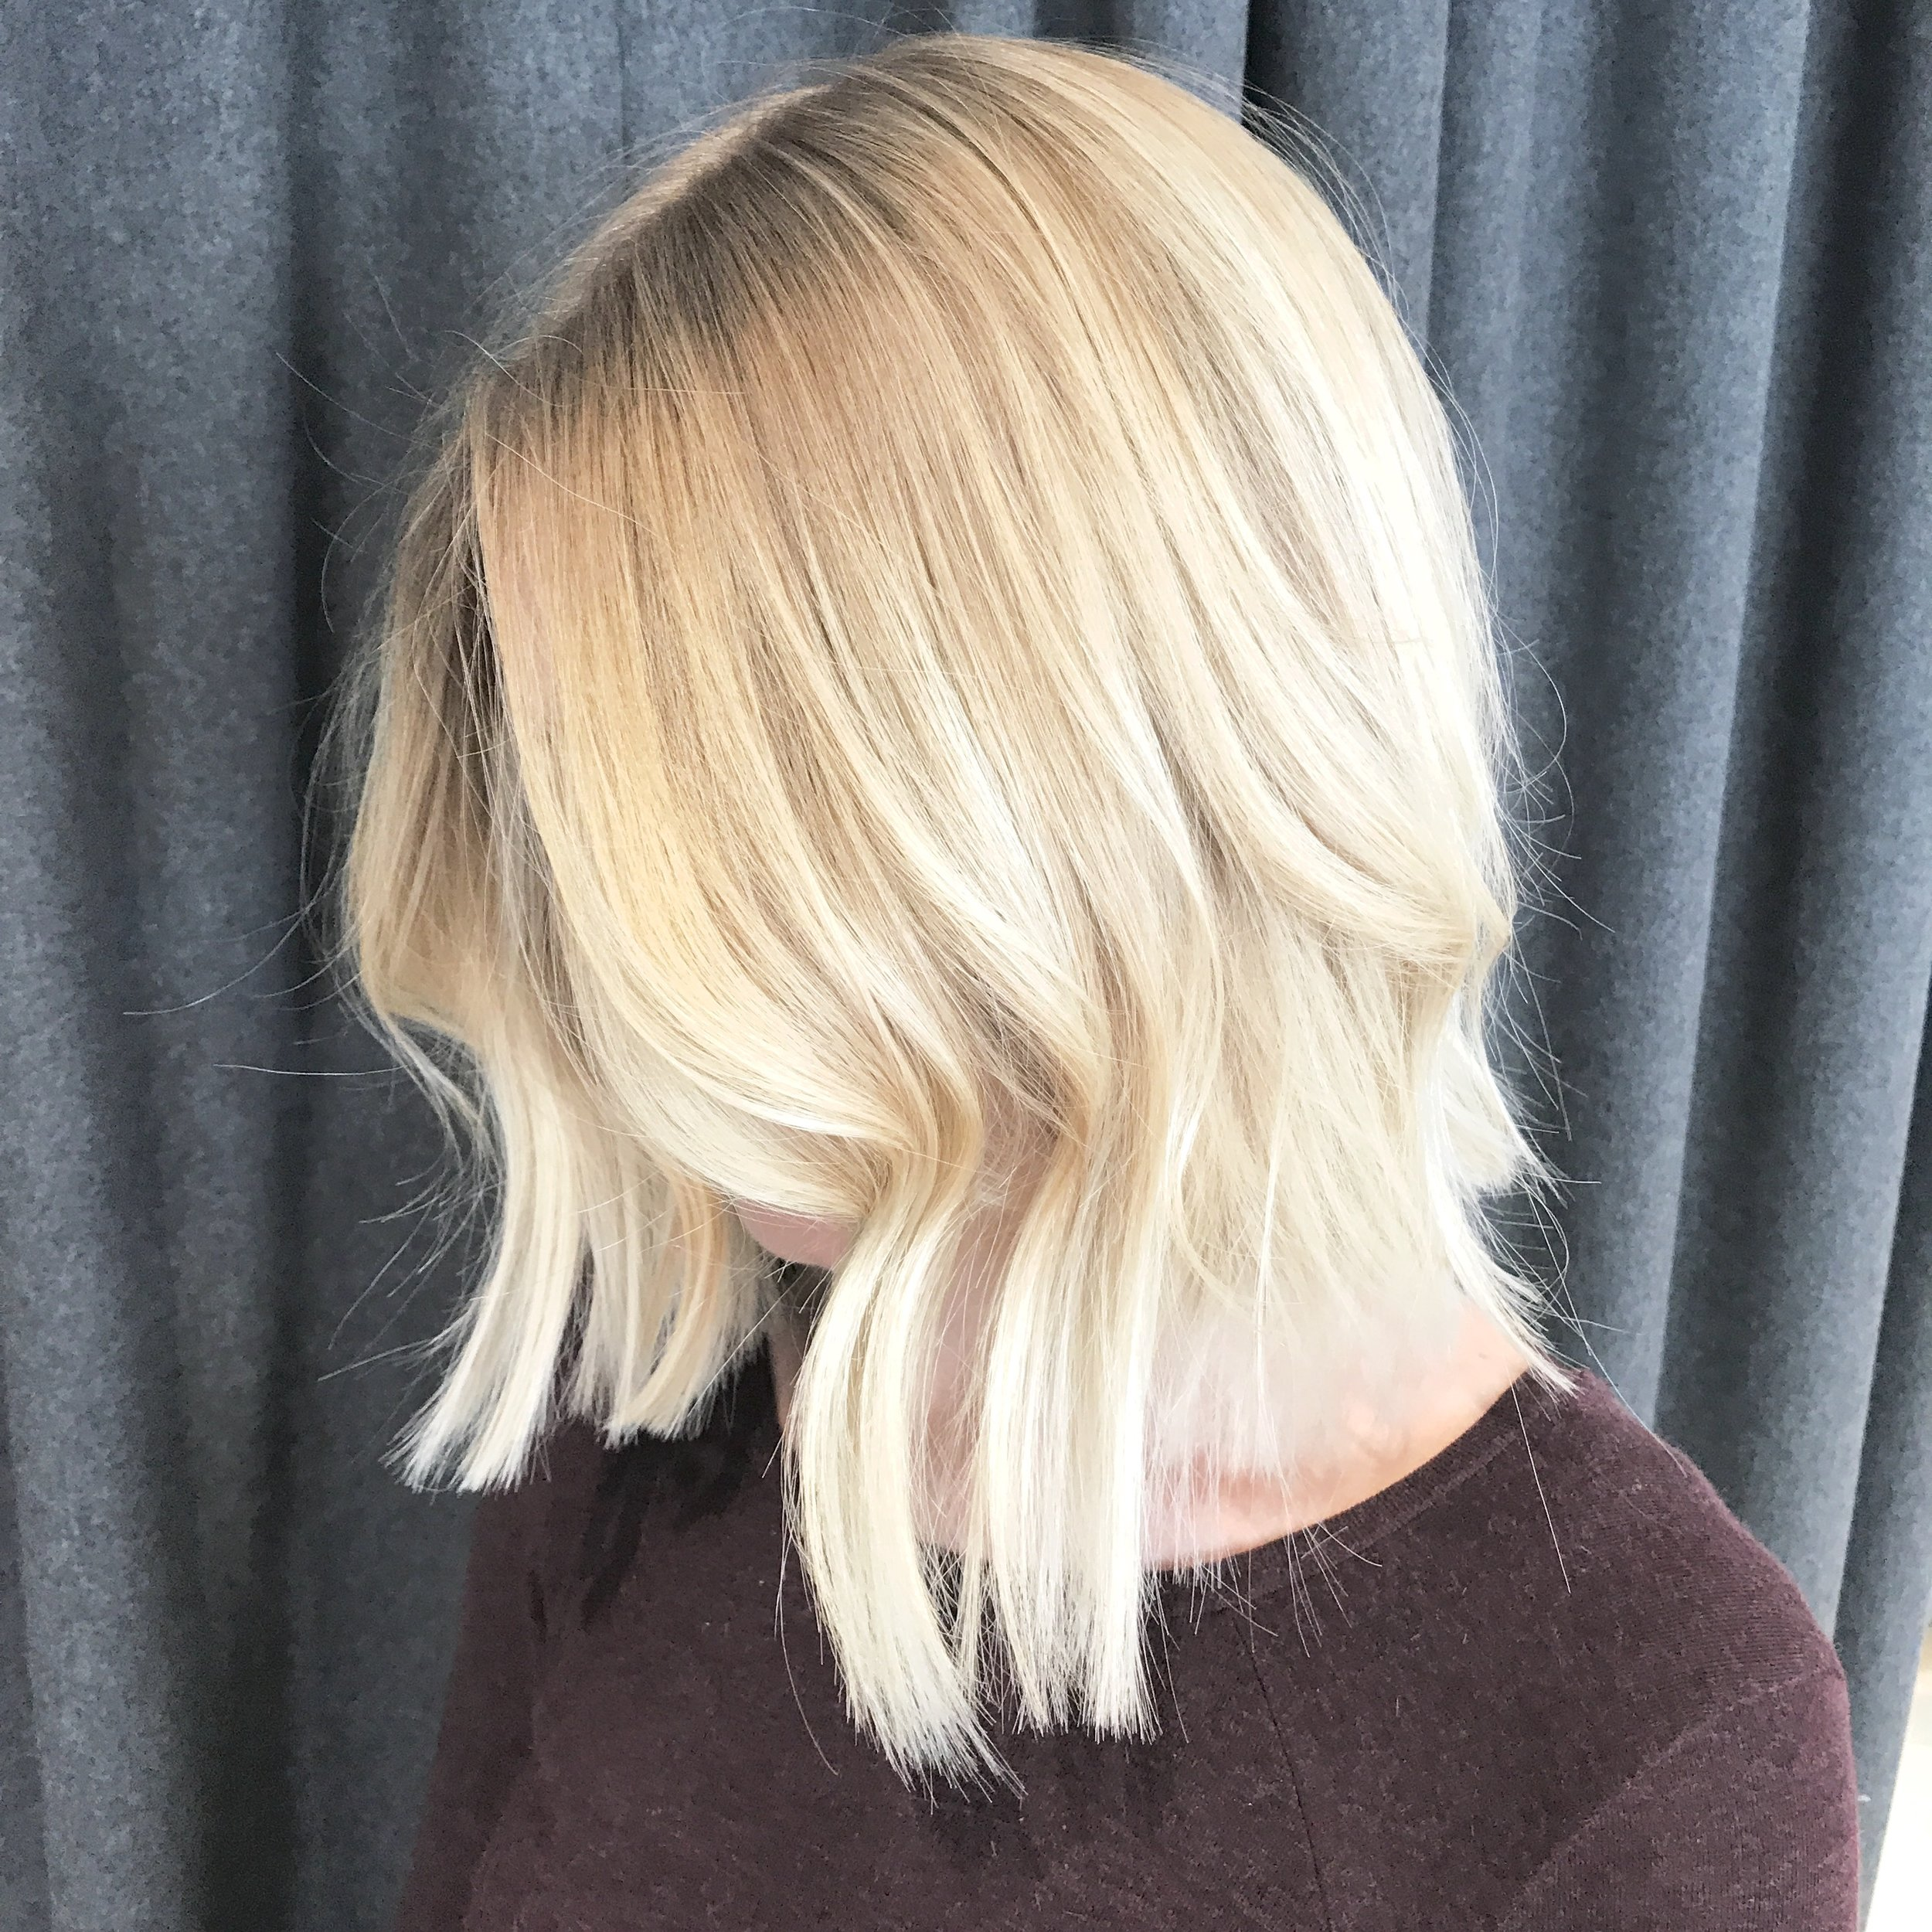 5 SIMPLE STEPS TO CARE FOR BLONDE HAIR  -